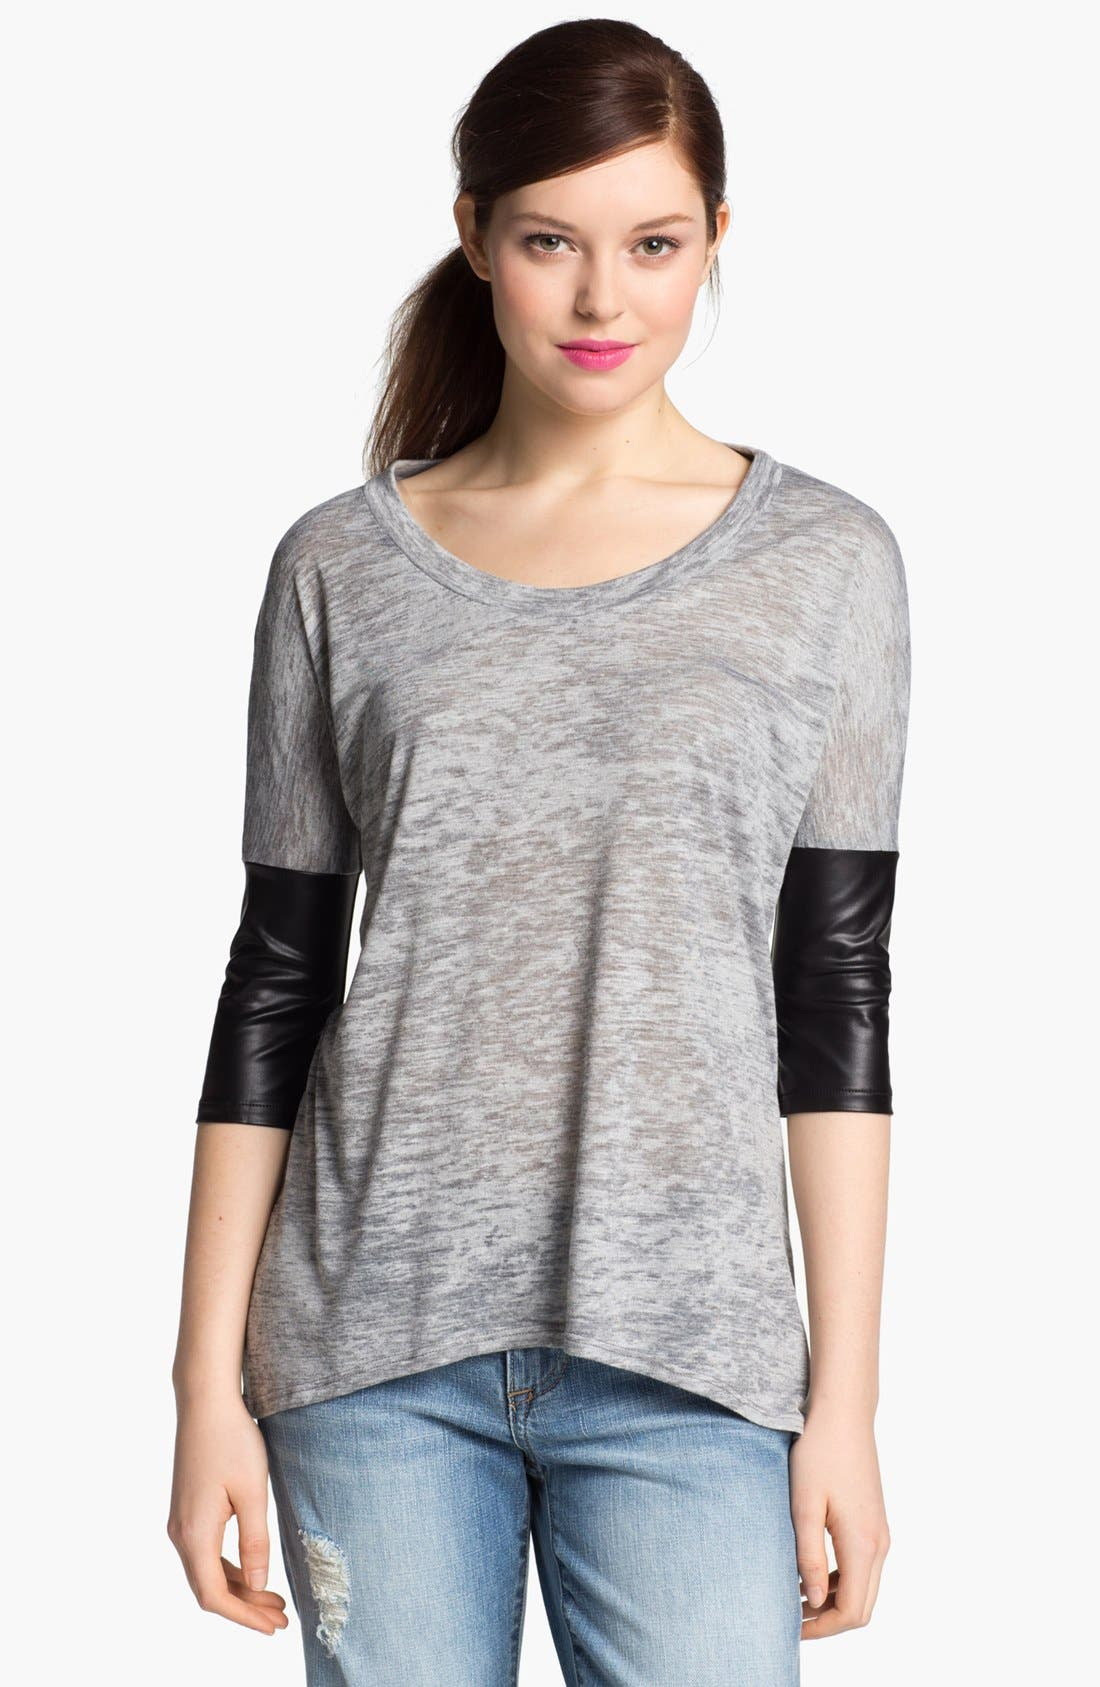 Alternate Image 1 Selected - I.Ner Faux Leather Sleeve Slub Tee